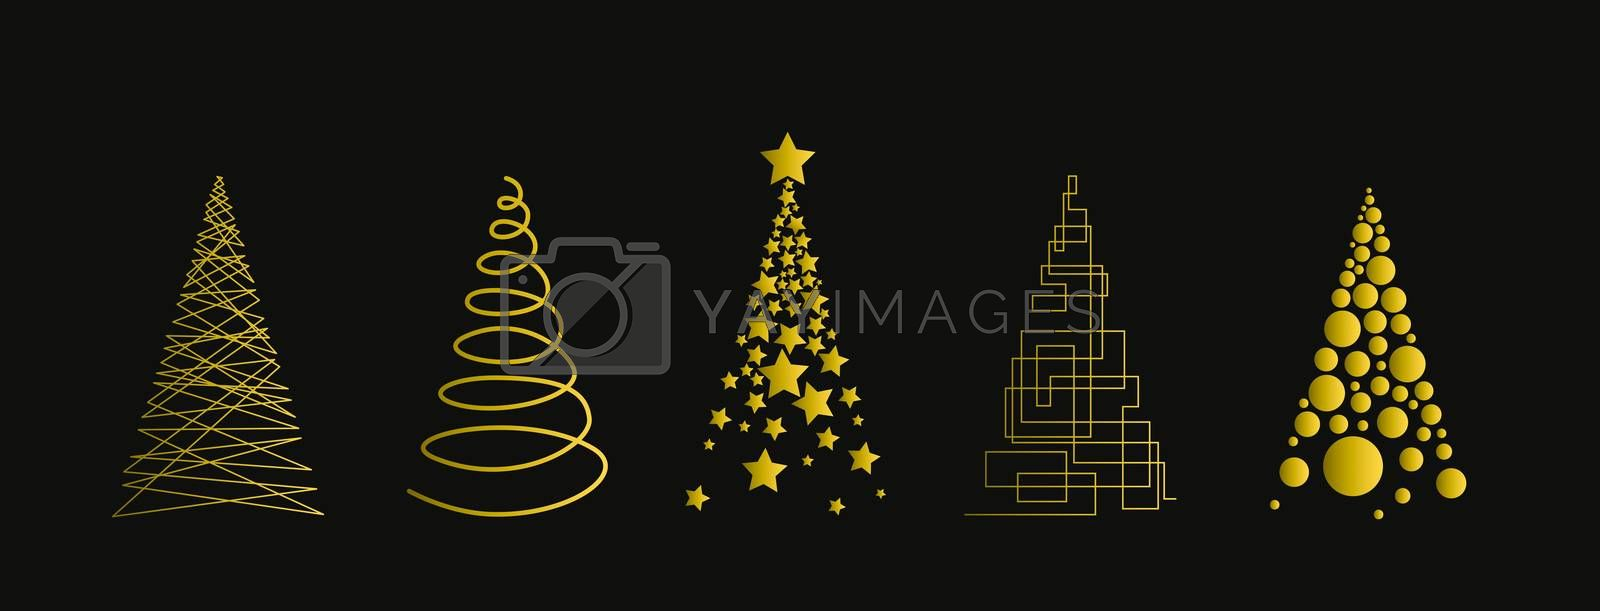 Illustration for christmas cards and web banners and copy space